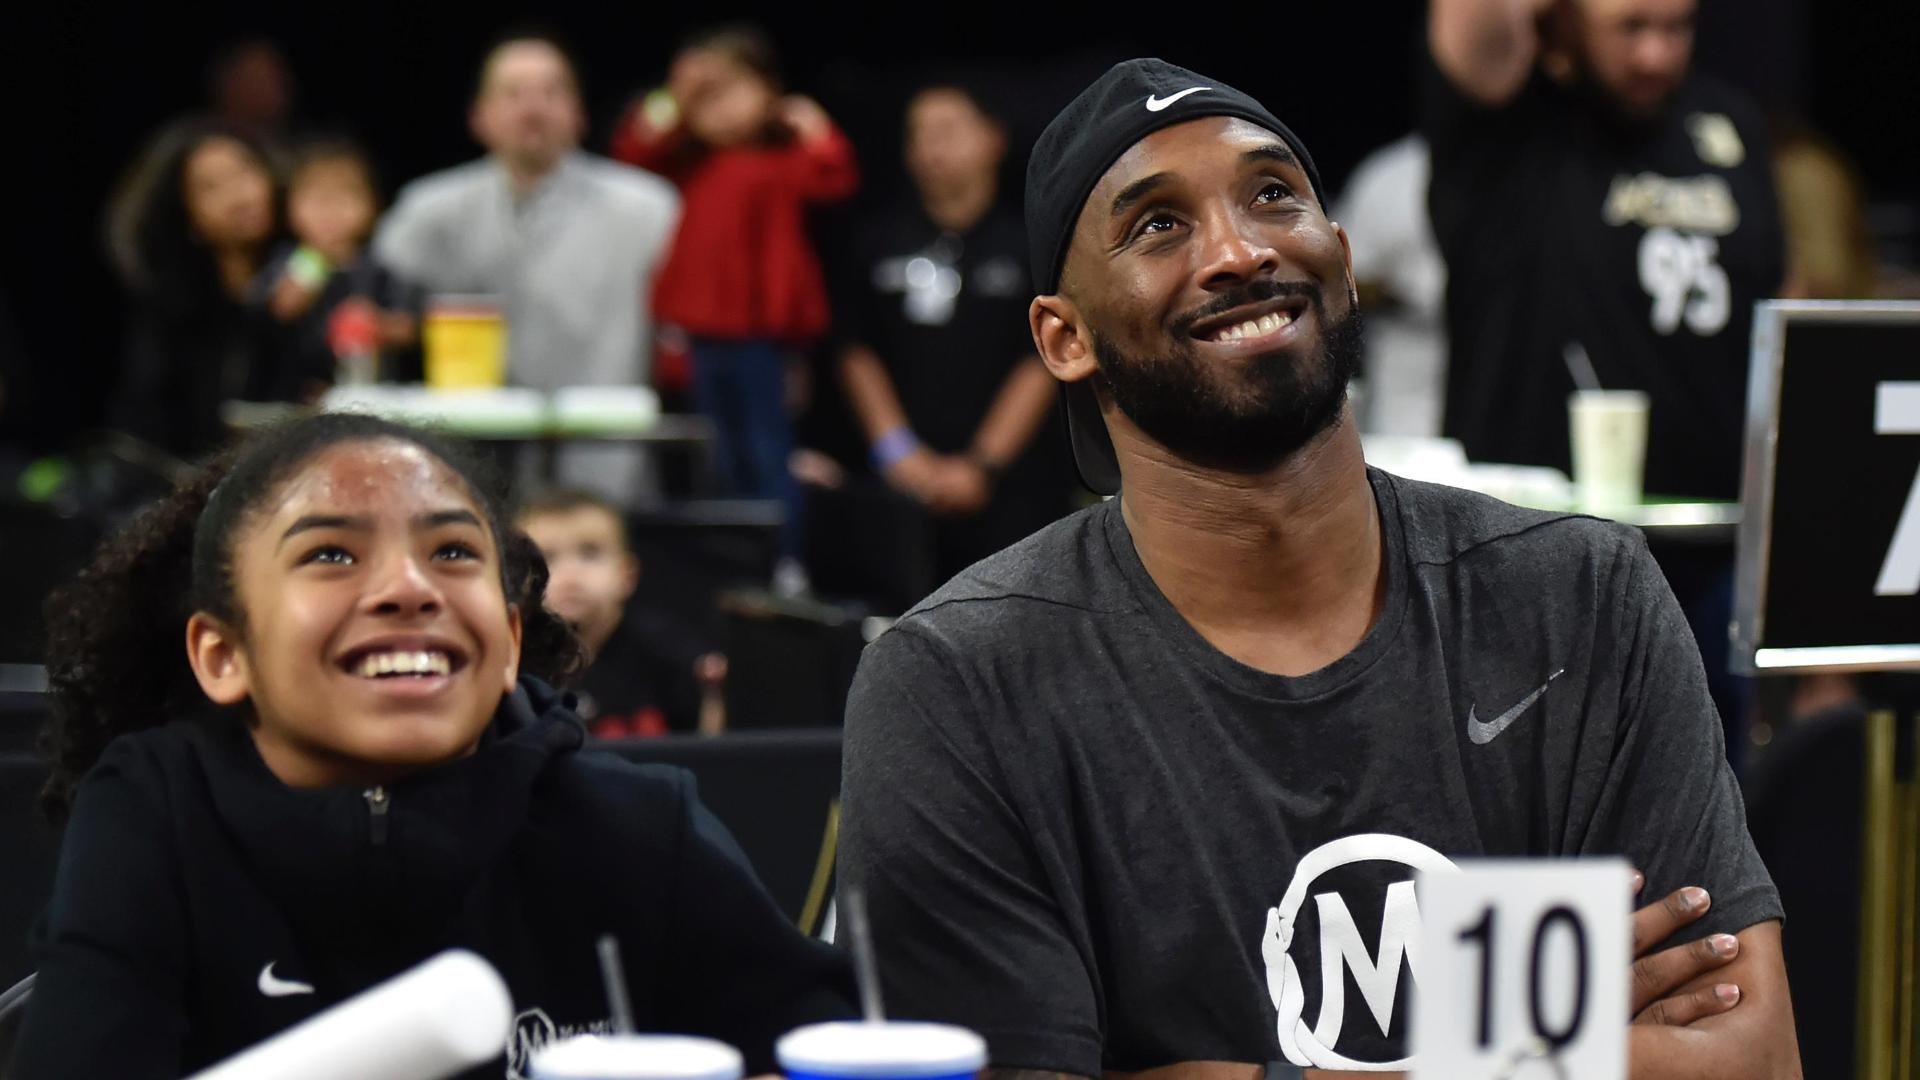 Kobe shows up to the Sparks-Aces game